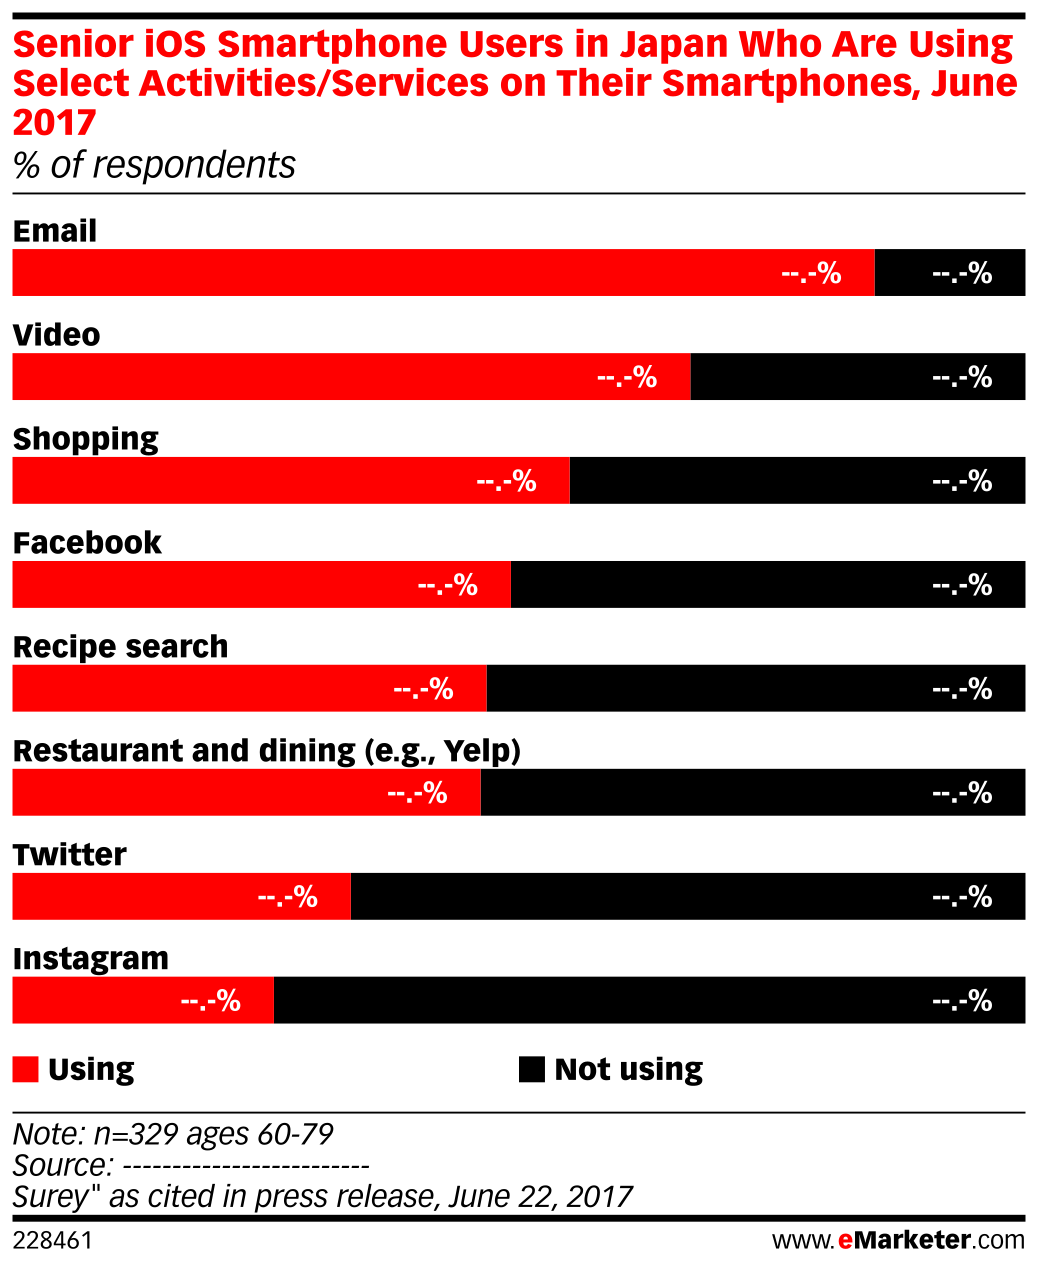 Senior iOS Smartphone Users in Japan Who Are Using Select Activities/Services on Their Smartphones, June 2017 (% of respondents)